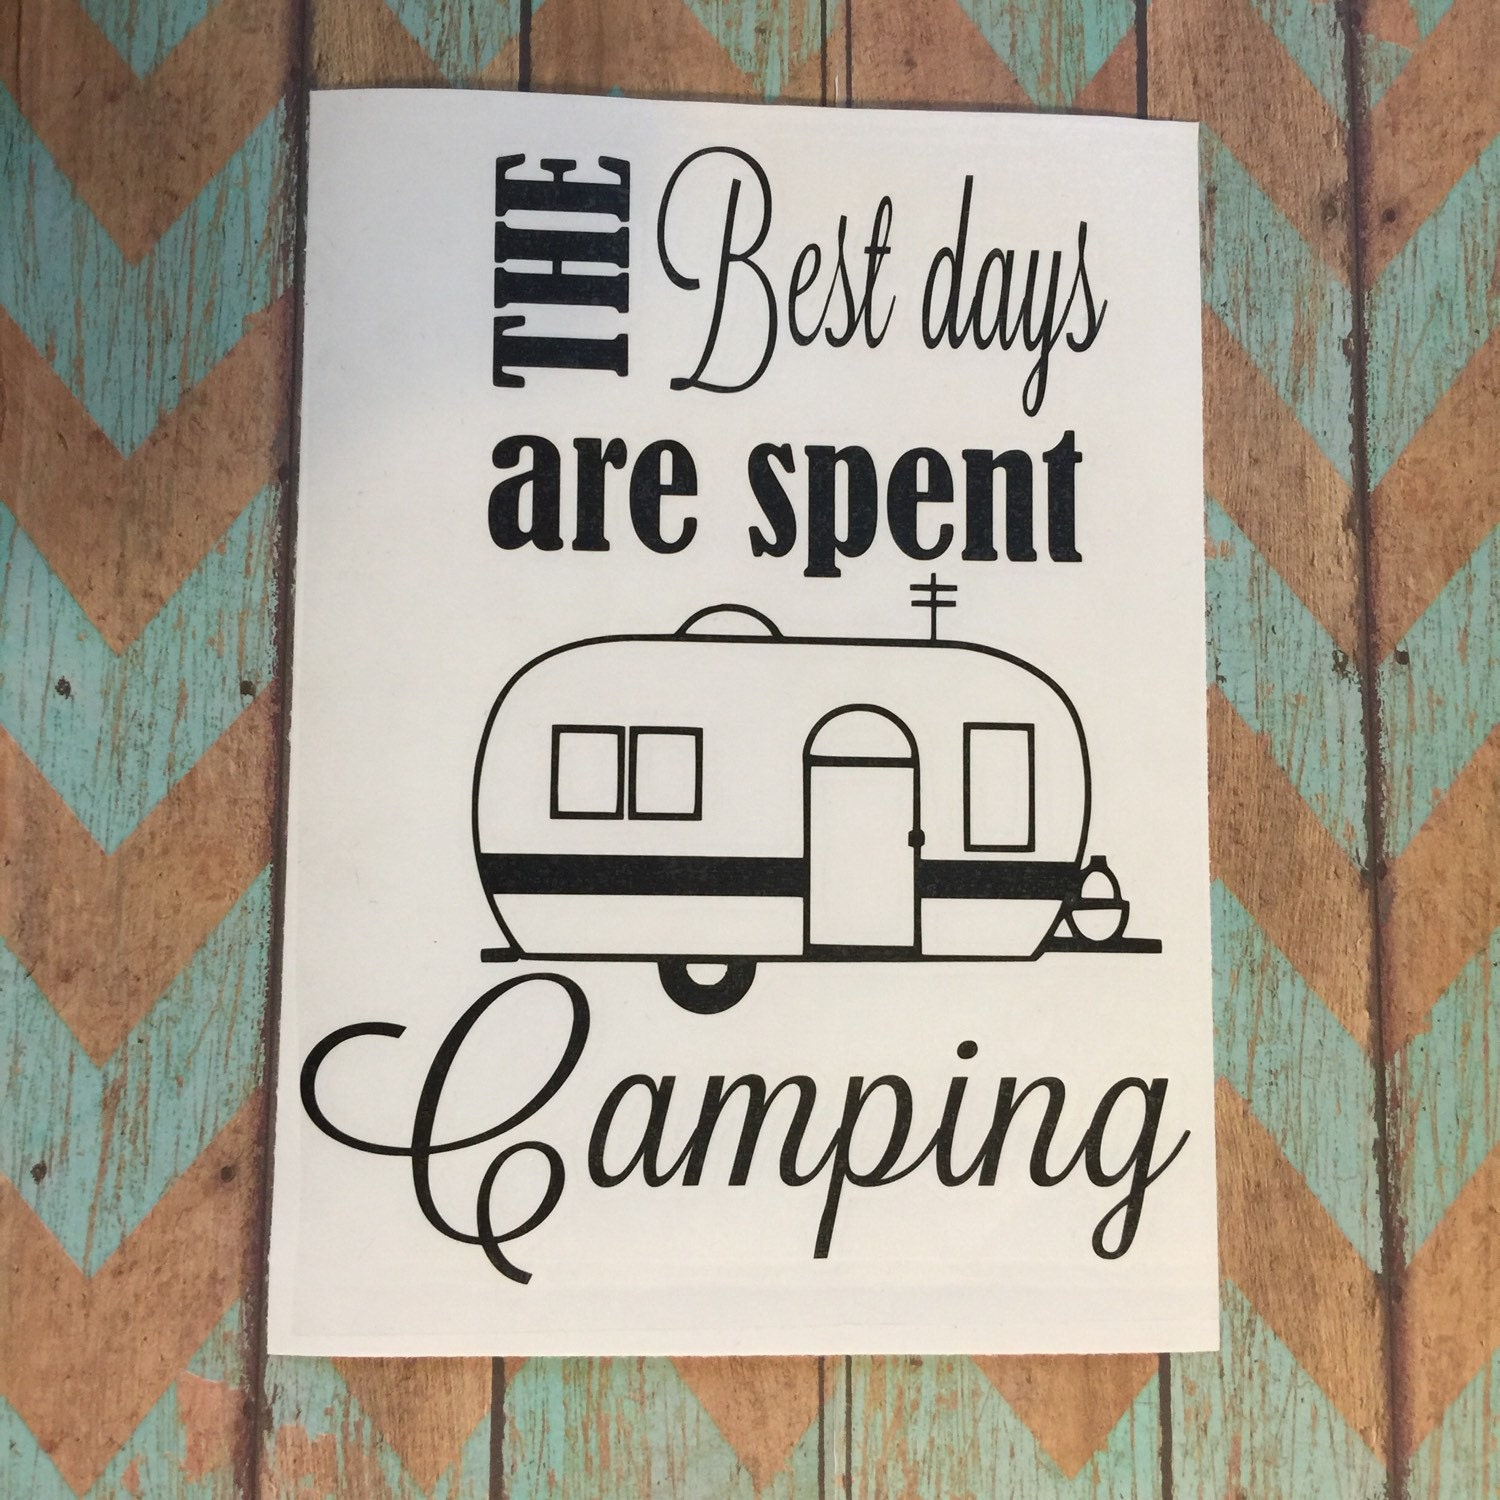 Camping Quotes Funny: Camping Decal Happy Camper Camping Decor Camping Signs